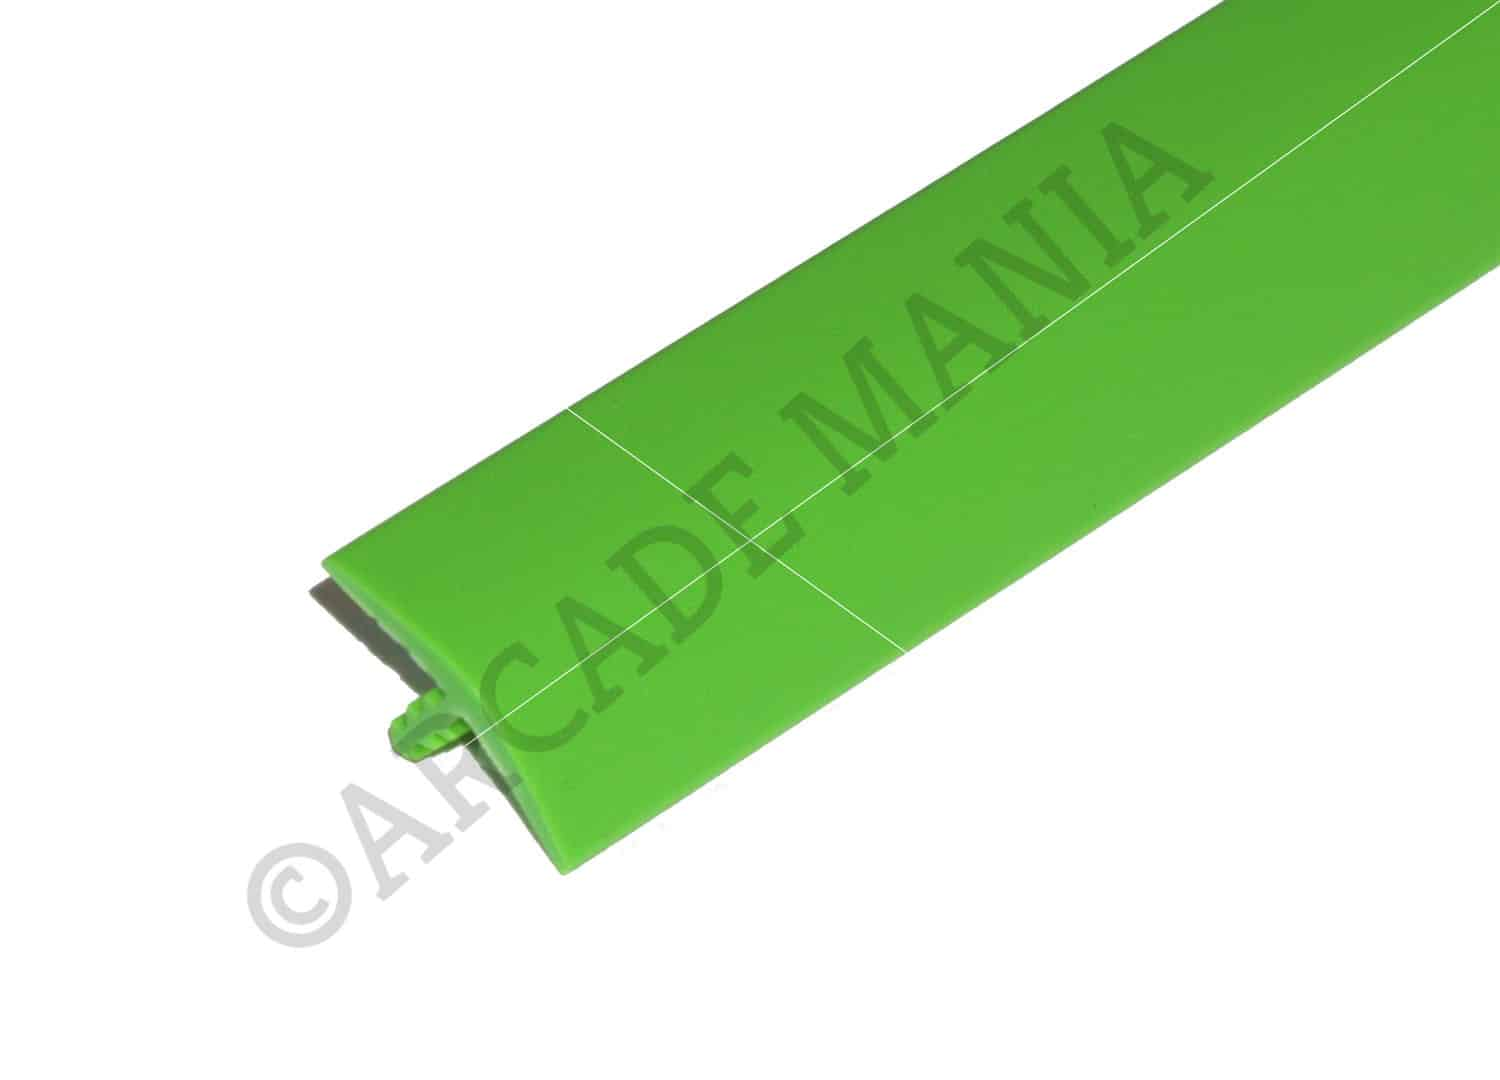 Green 3 Quarter Inch T-Molding 19.5mm Trim Image